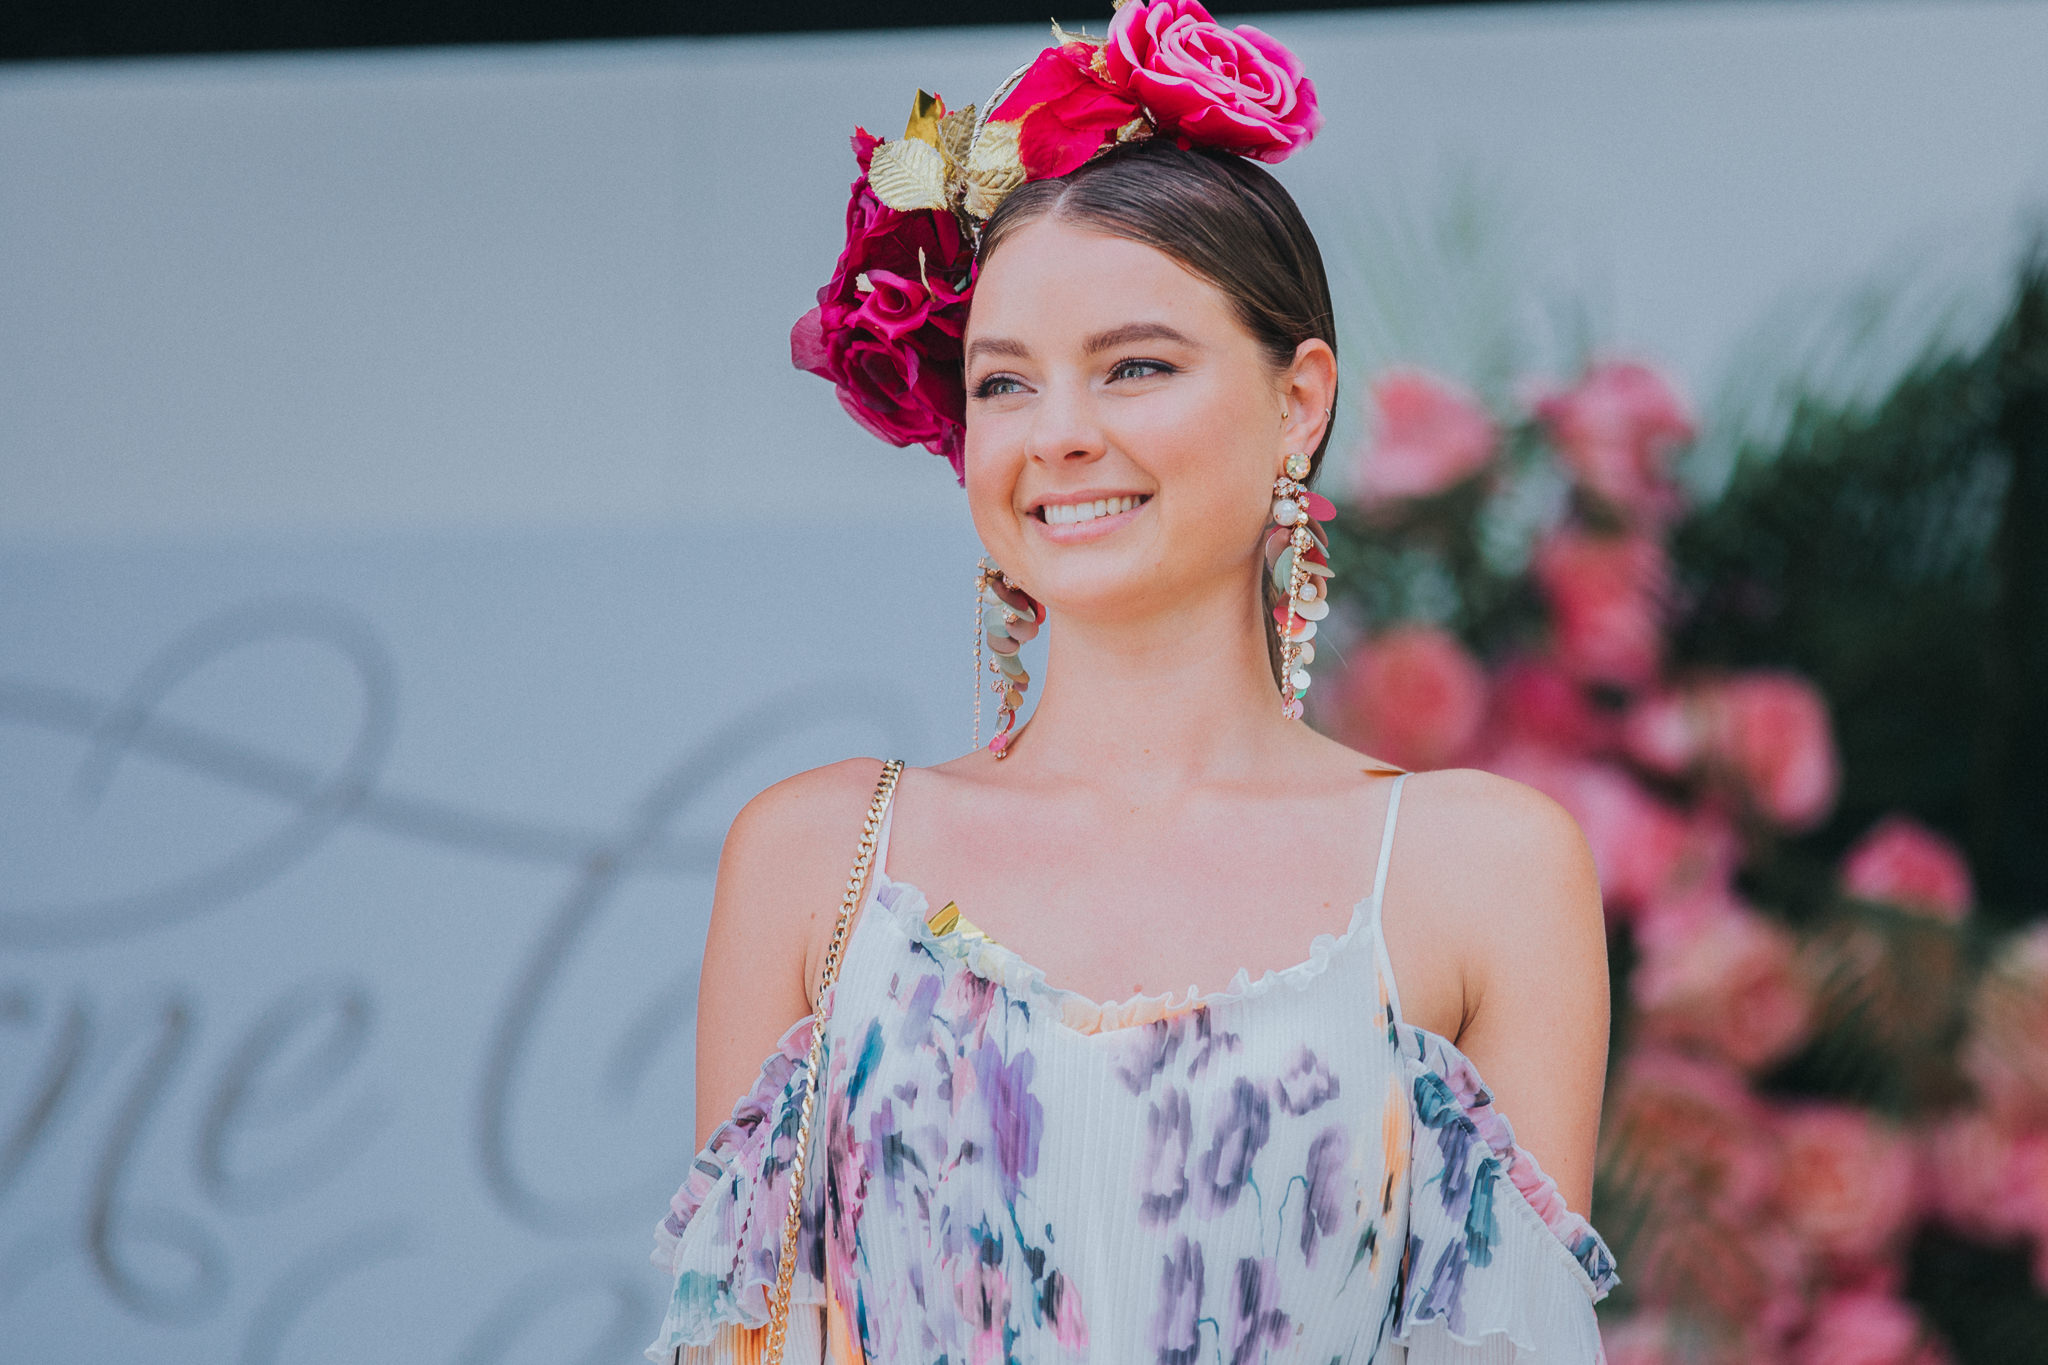 Model at the Melbourne Cup 2017